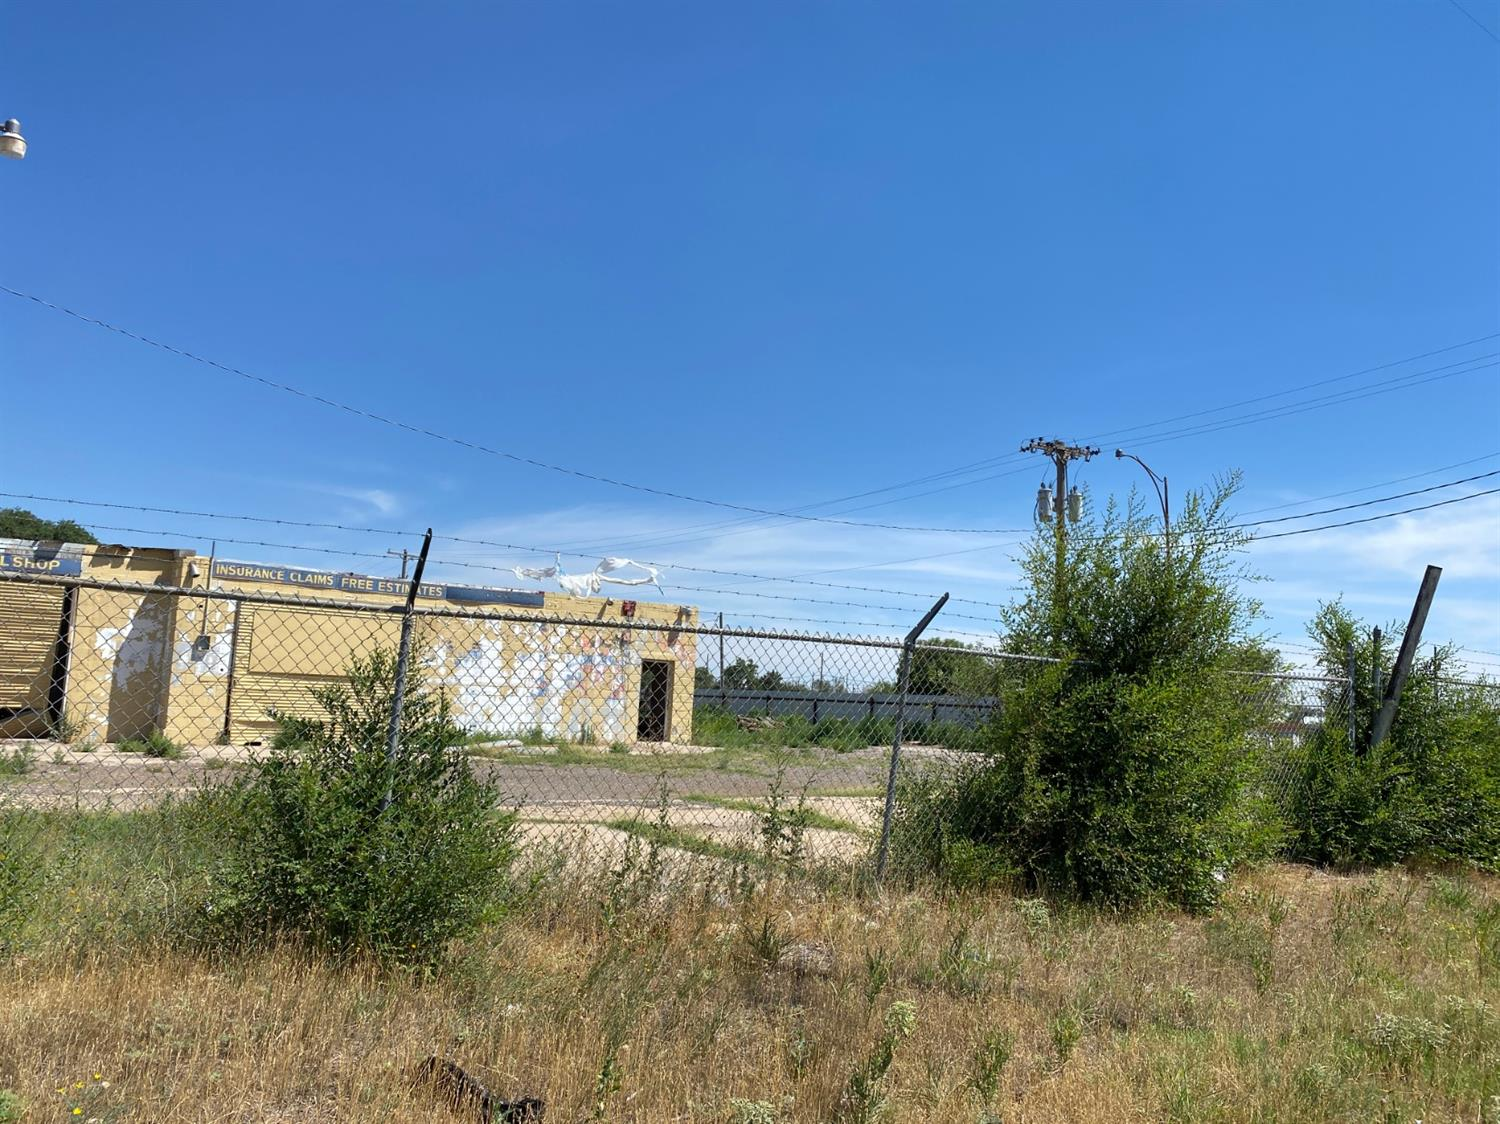 Looking for a commercial fixer upper property in an excellent traffic area? 3018 Idalou Rd it's available! Corner commercial lot in almost half acre!